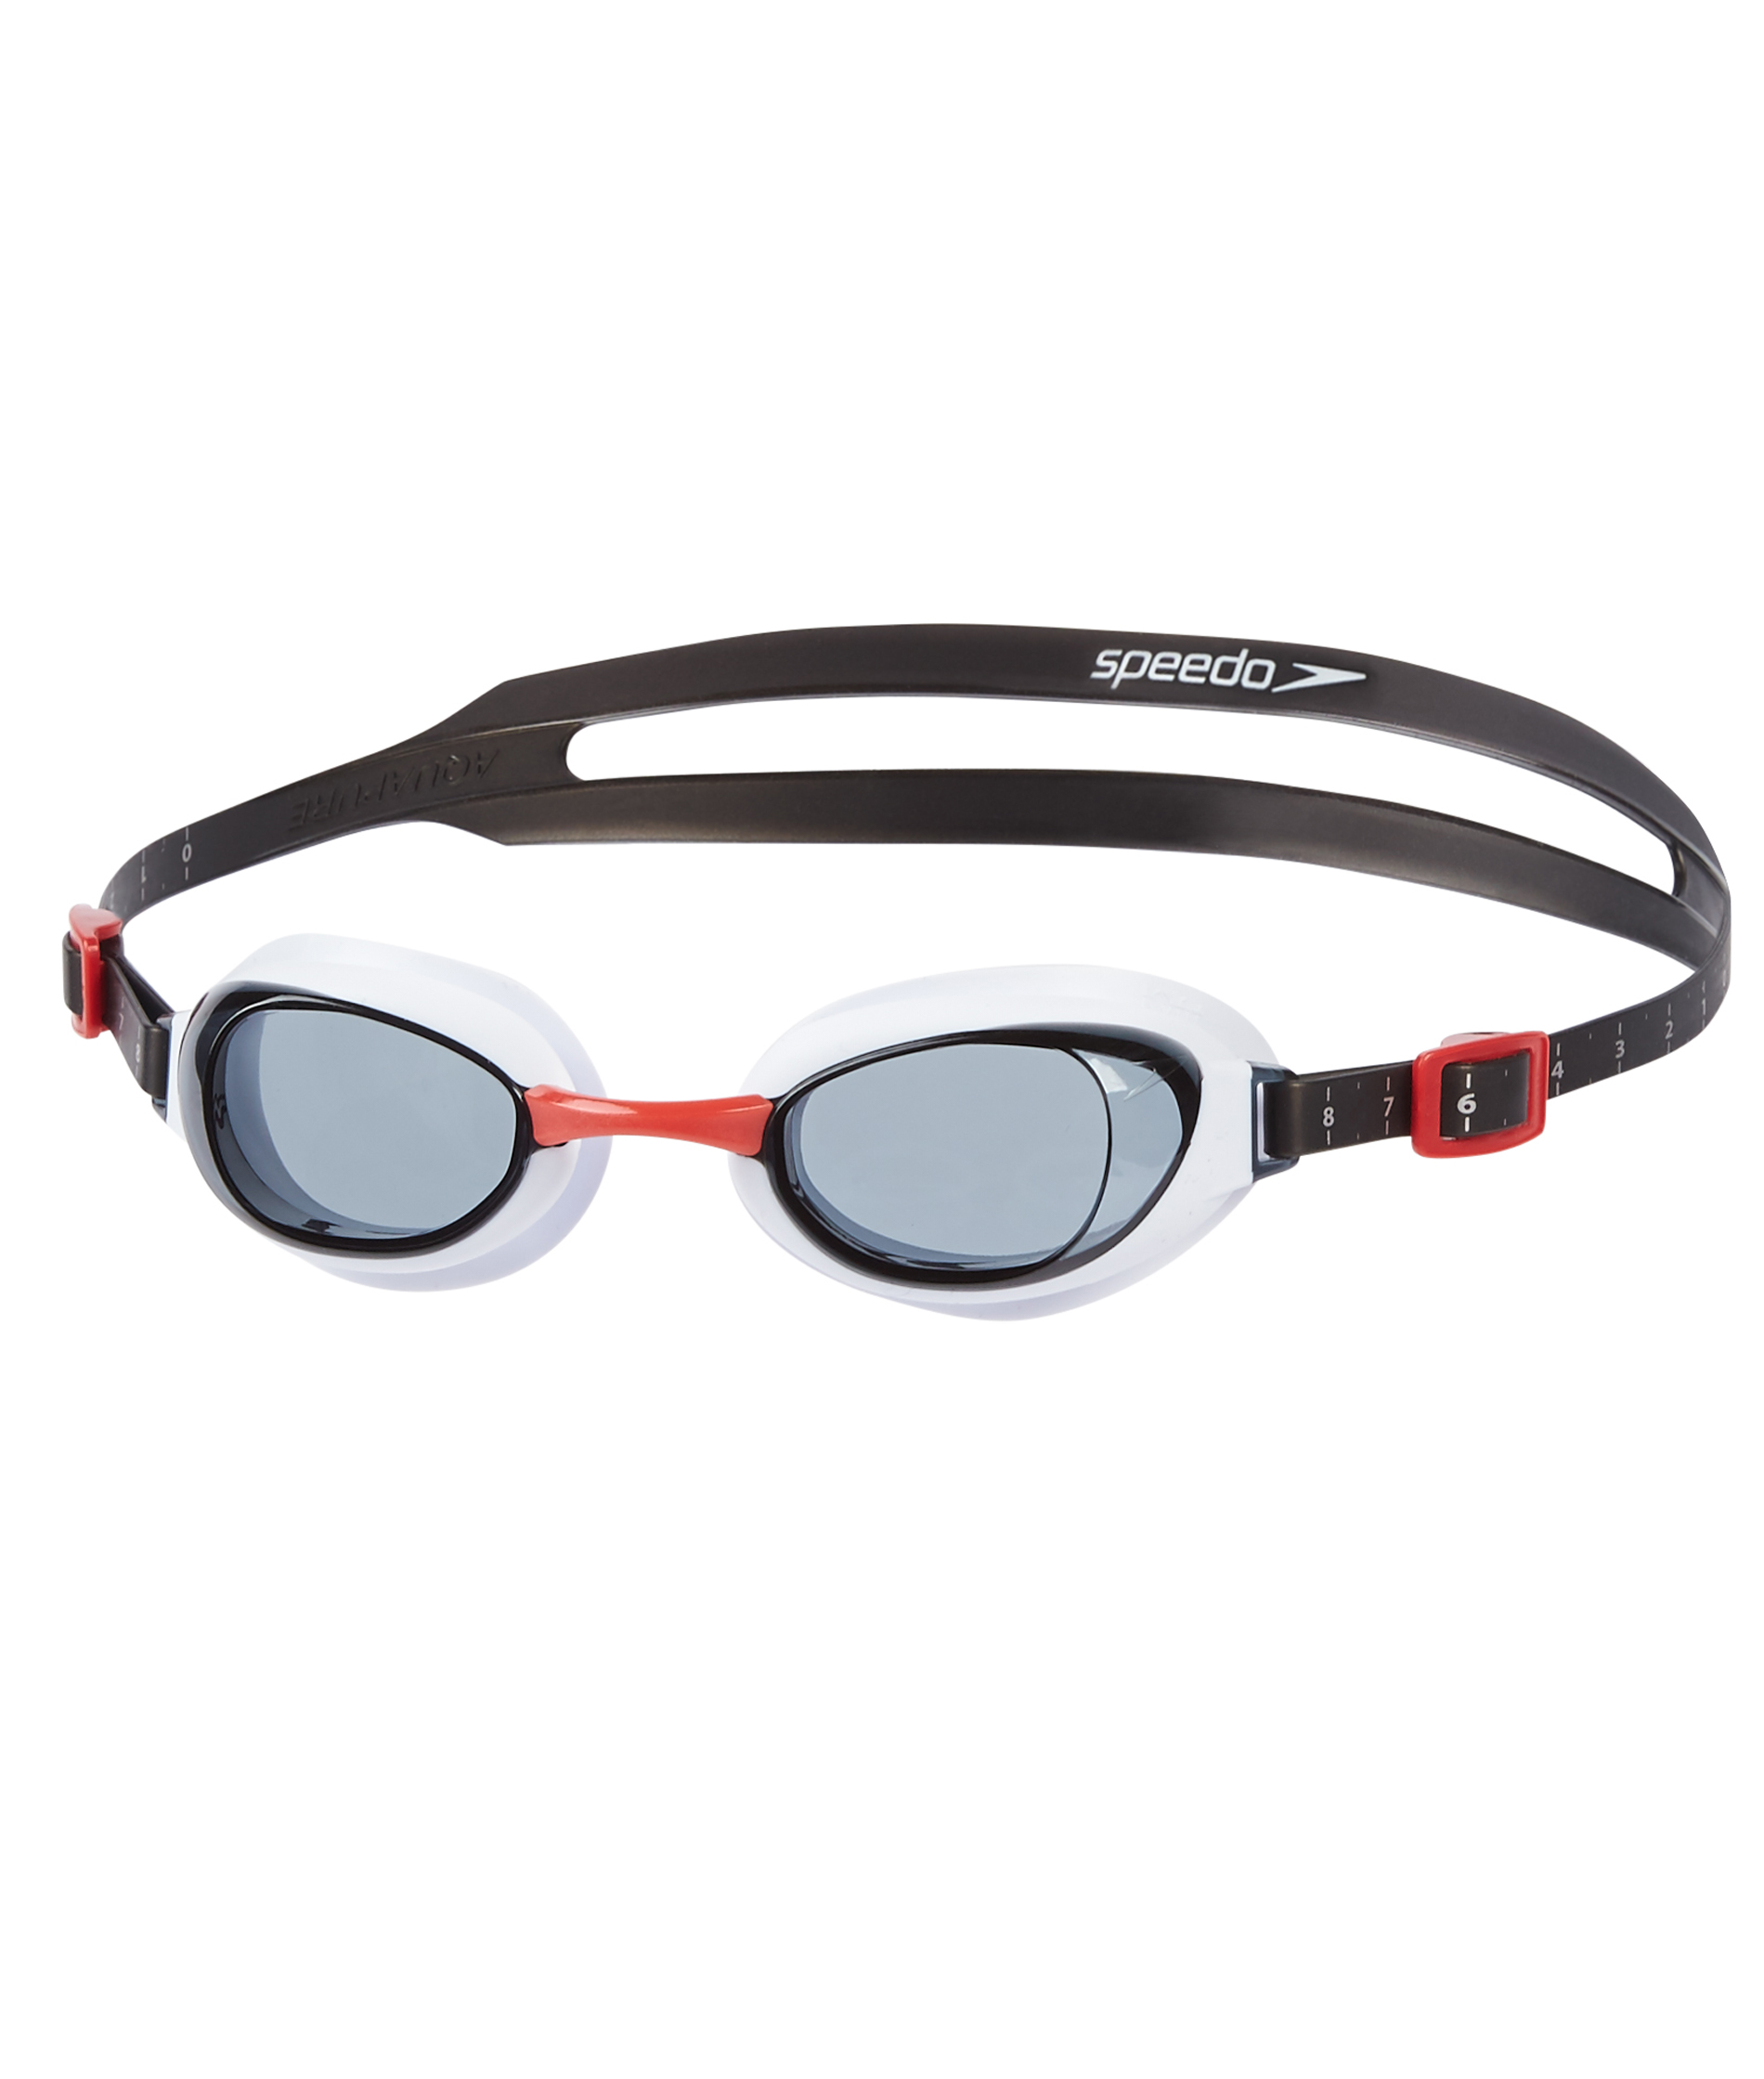 Speedo Aquapure Goggle - Red/White/Smoke